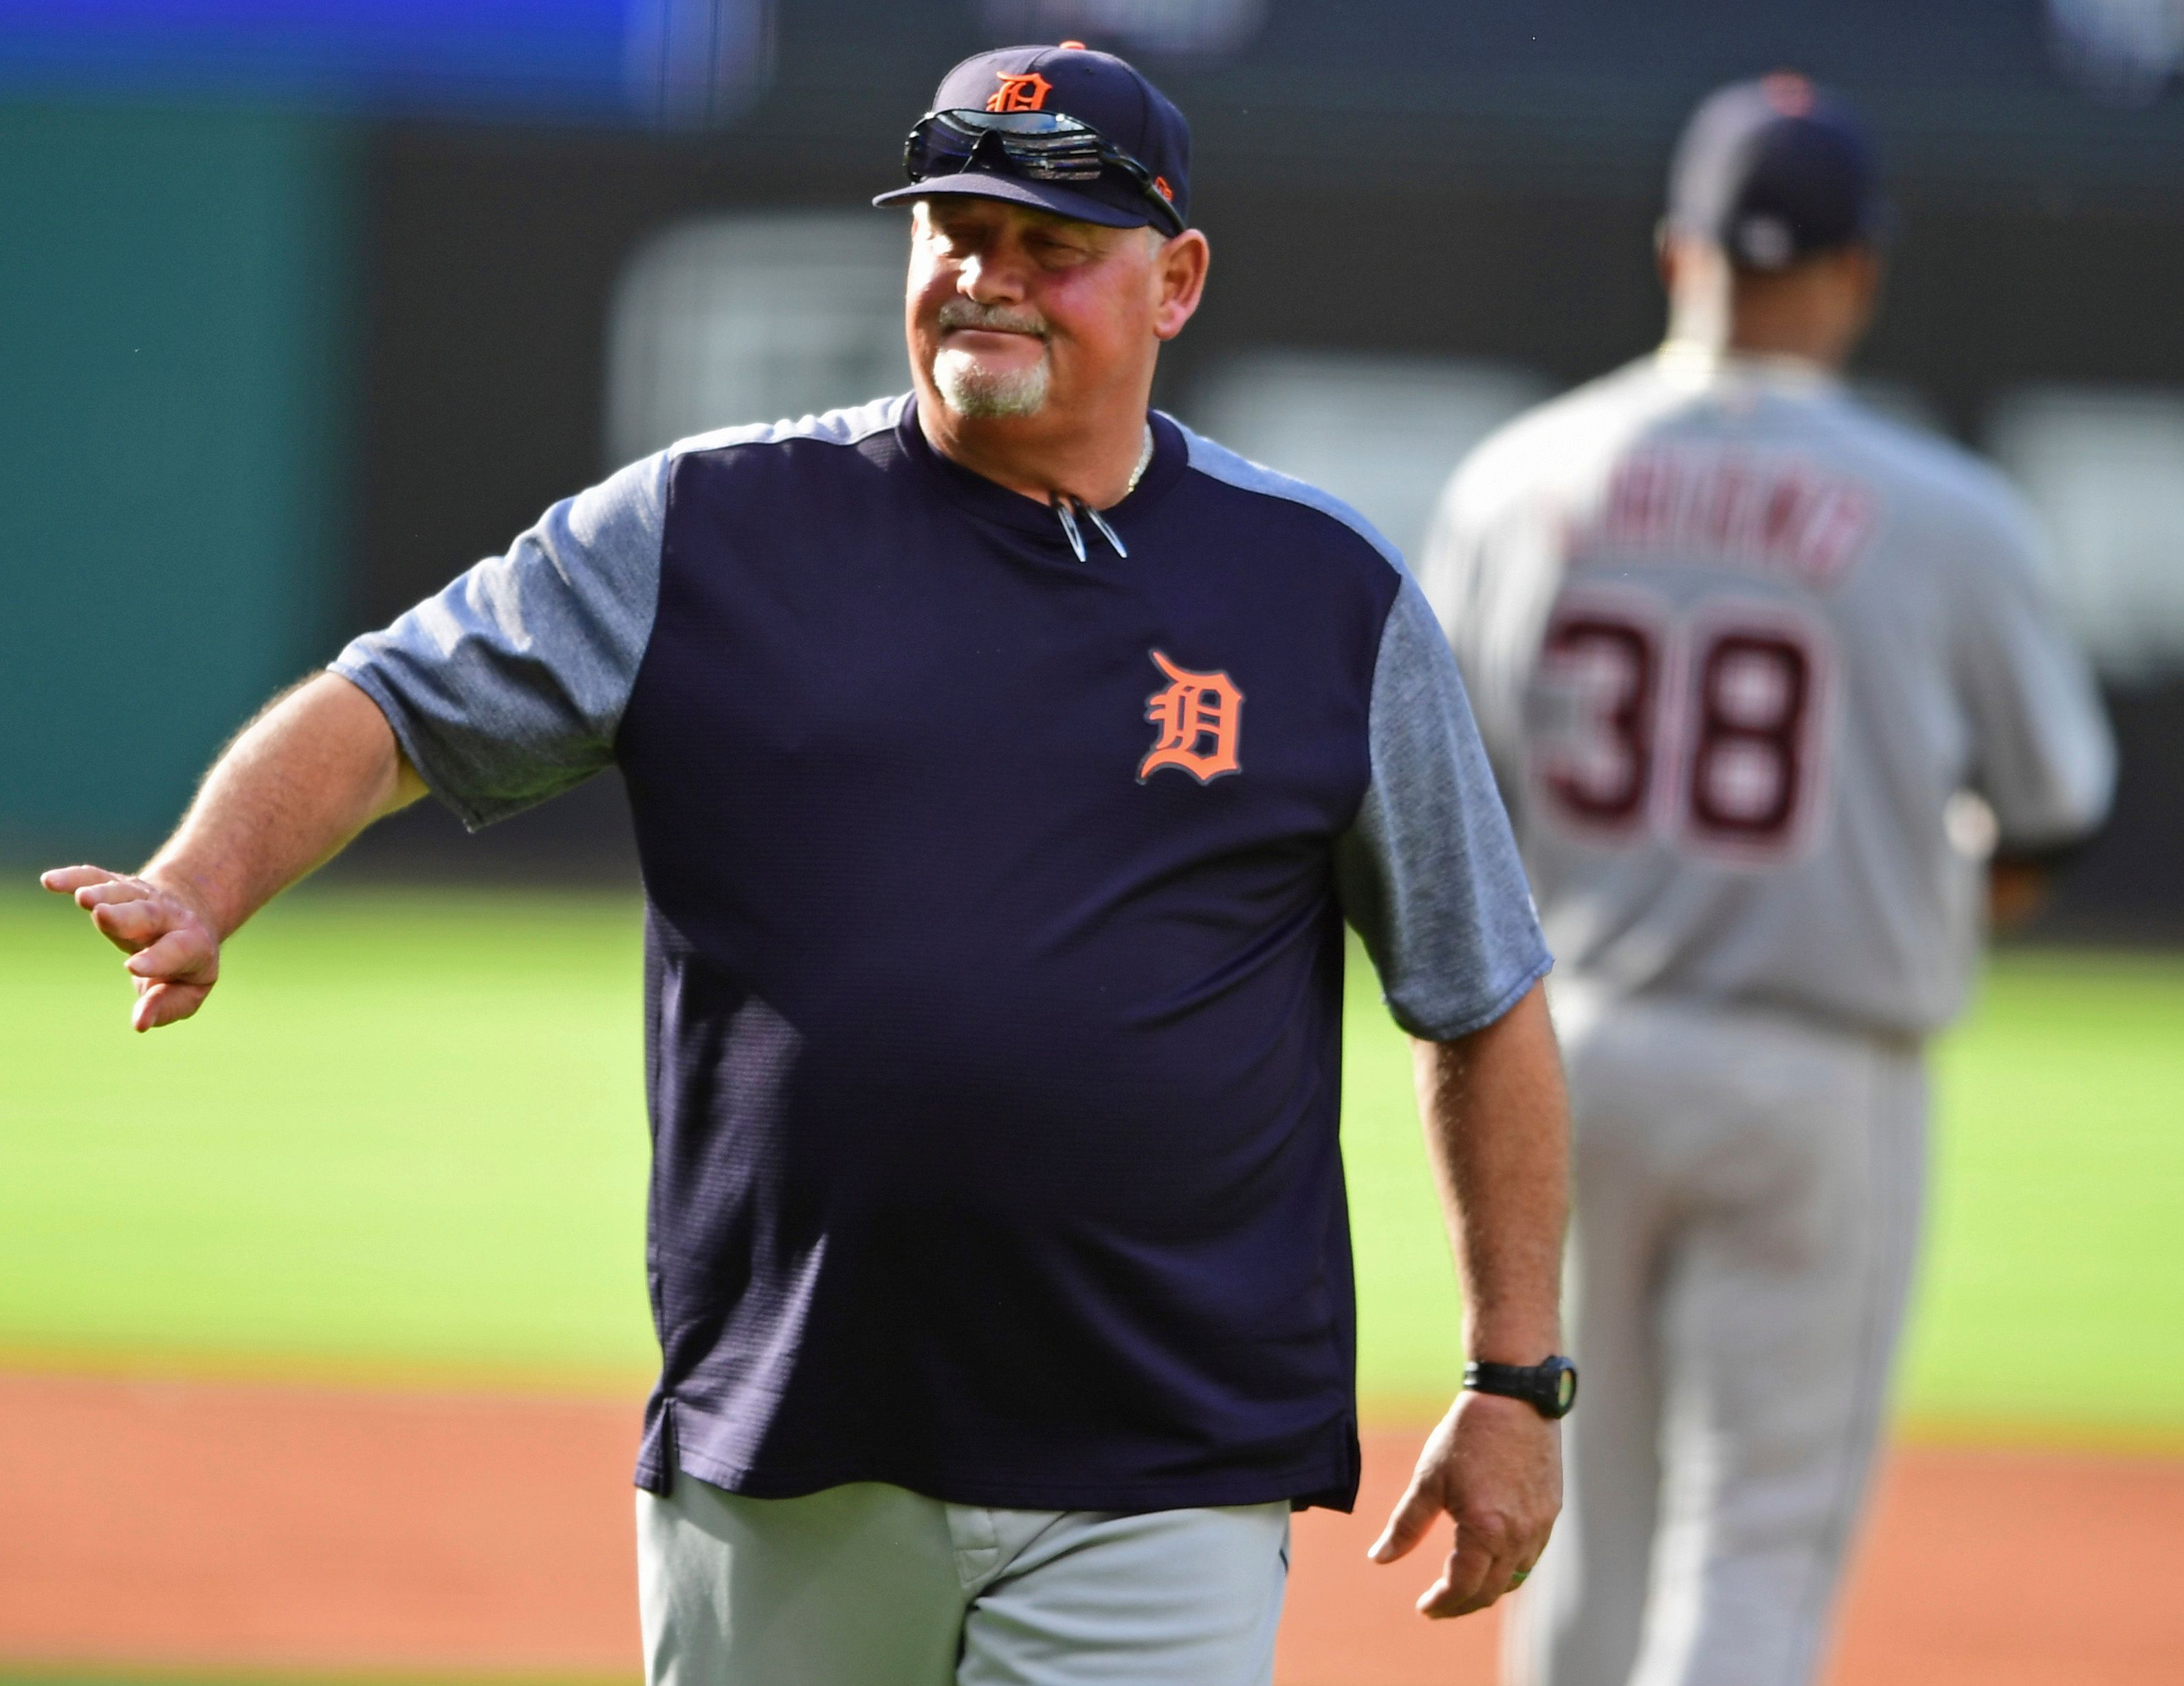 Tigers fire pitching coach Chris Bosio for 'insensitive comments'